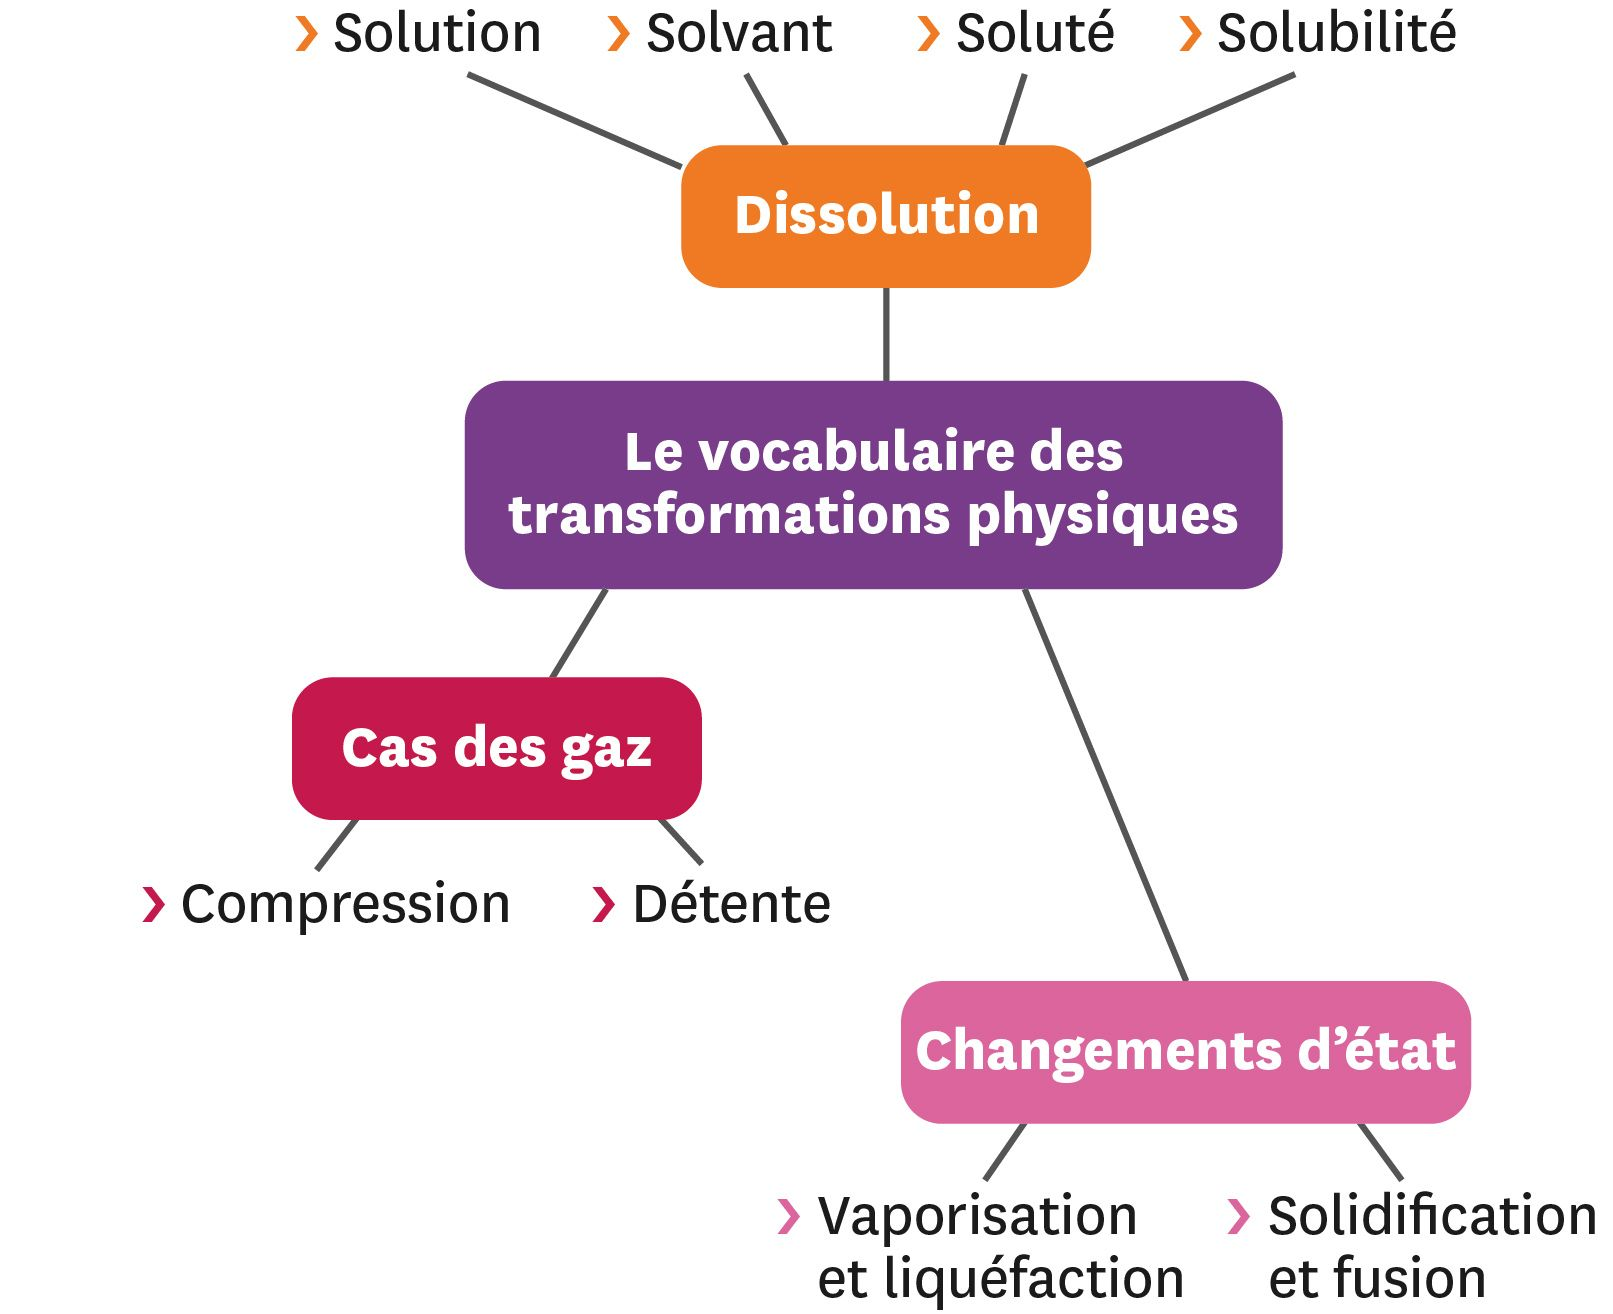 <stamp theme='pc-green1'>Doc. 1</stamp> Exemple de carte mentale.